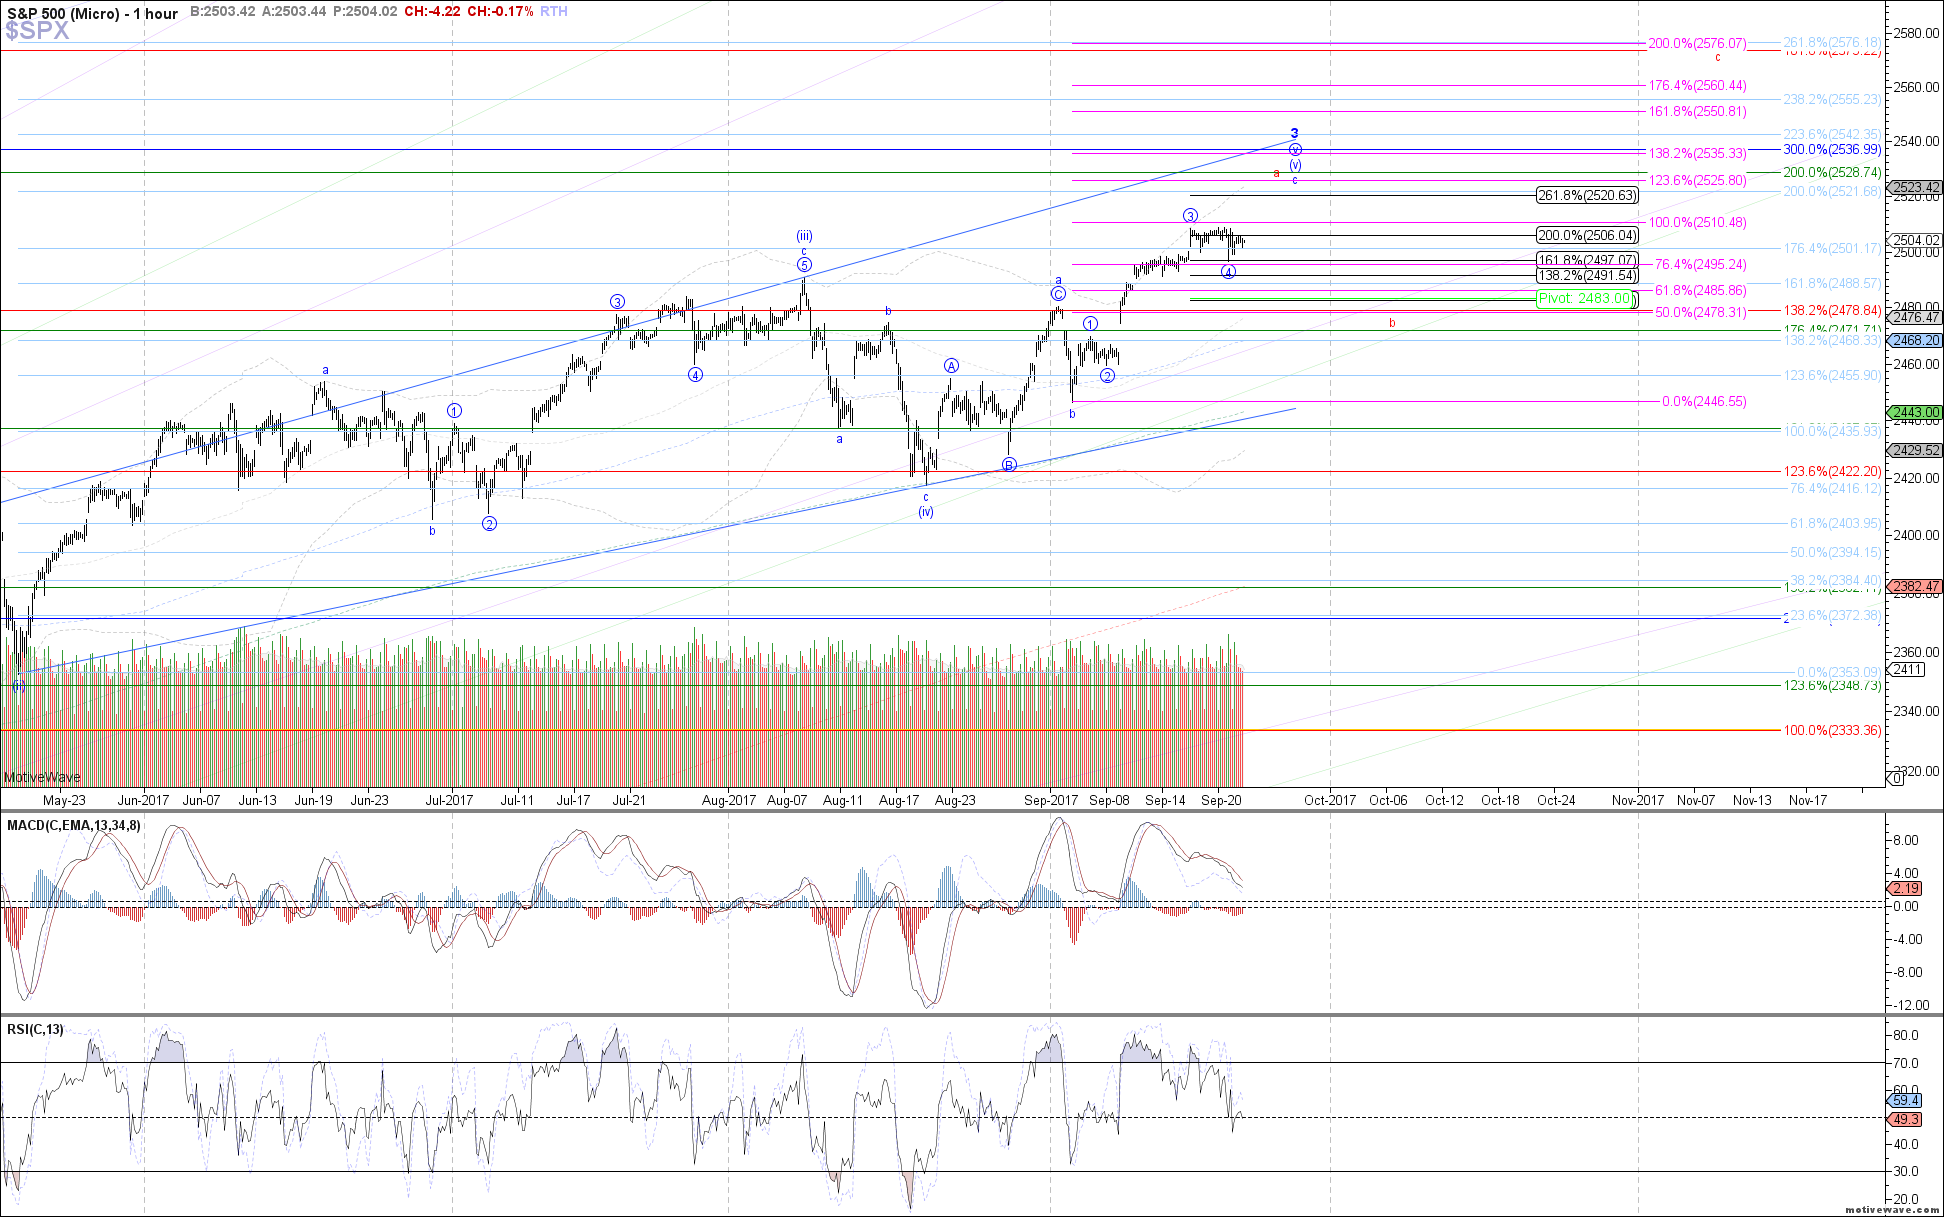 $SPX - Micro - Sep-21 1210 PM (1 hour)